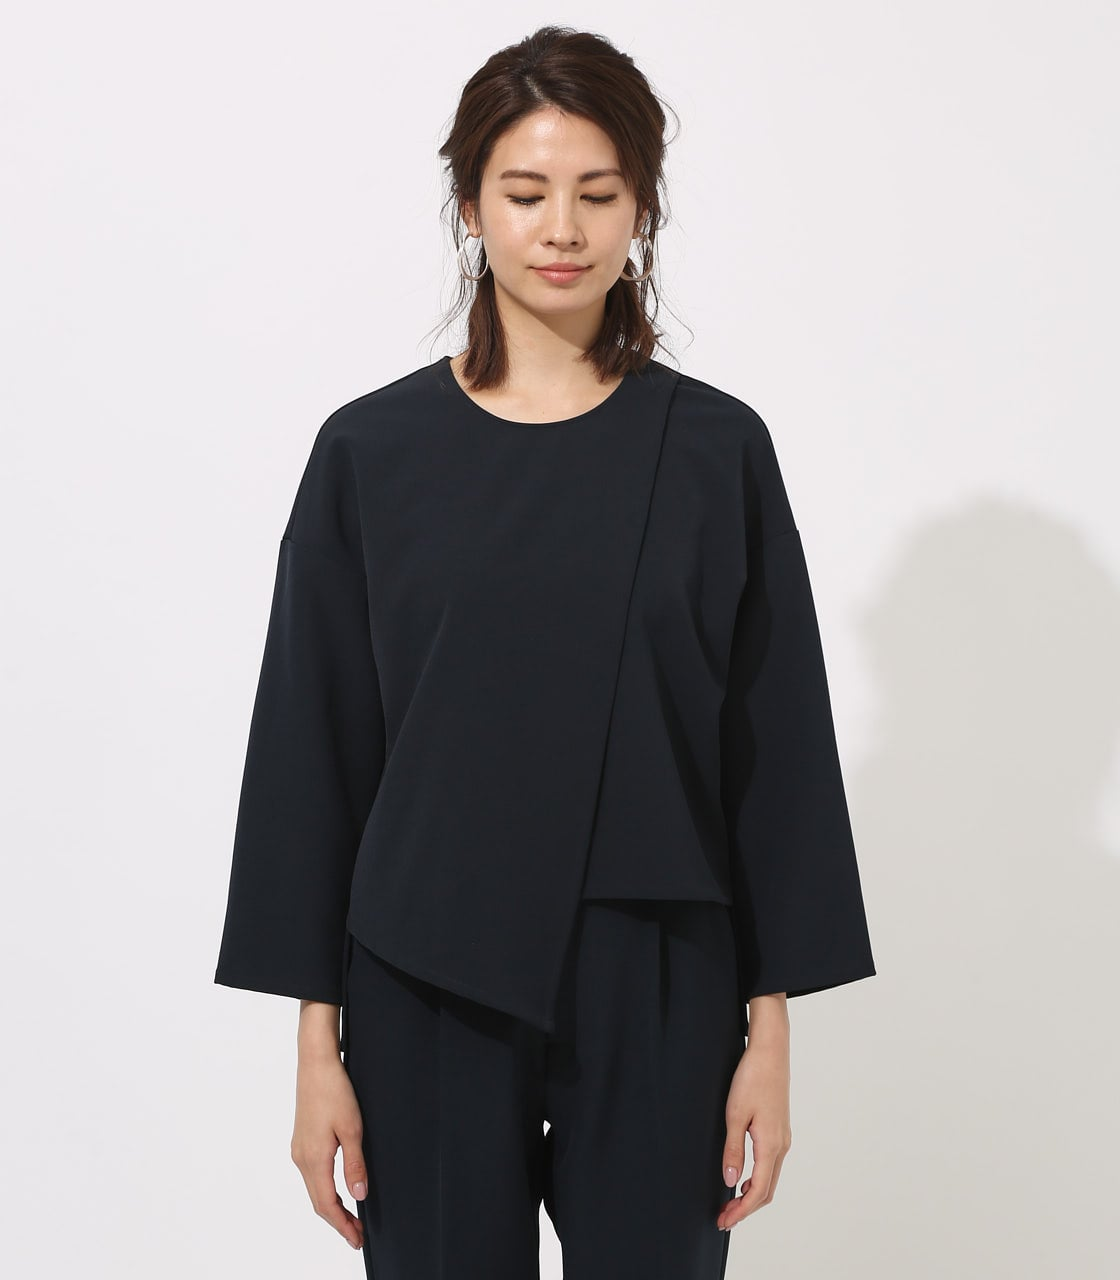 【AZUL BY MOUSSY】LAYERED IRREGULAR HEM TOPS 詳細画像 NVY 5